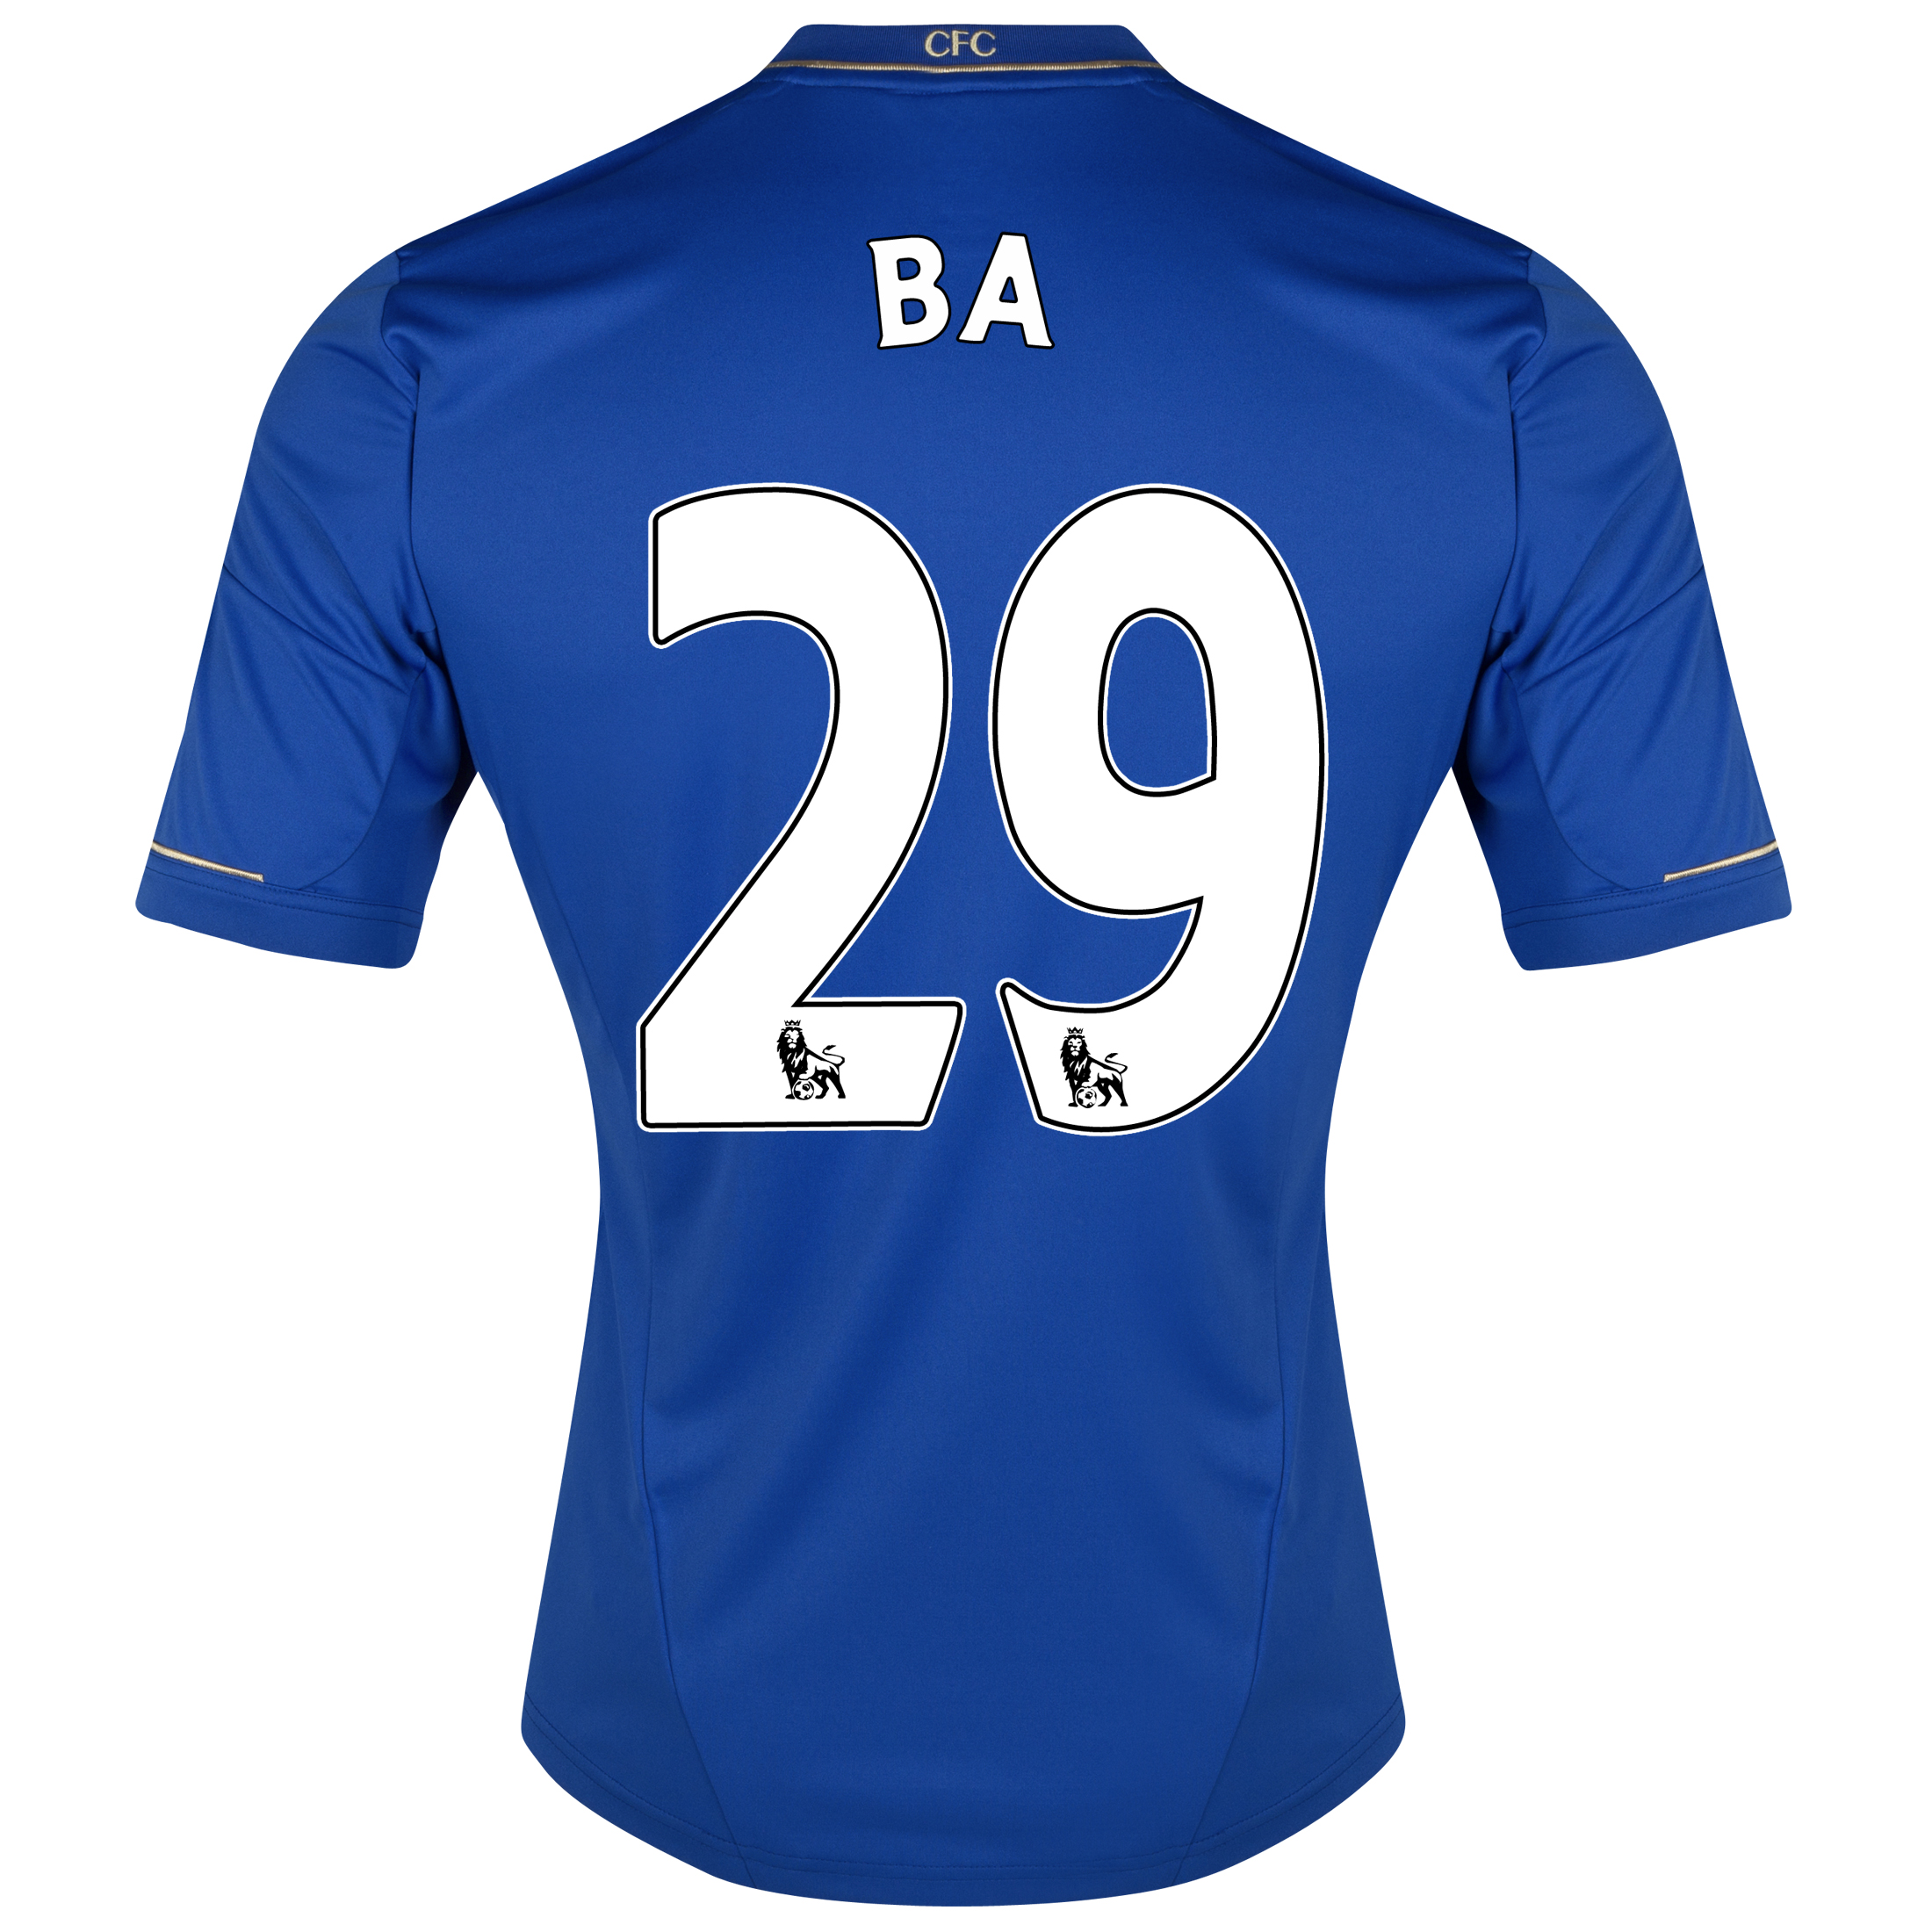 Chelsea Home Shirt 2012/13 with Ba 29 printing